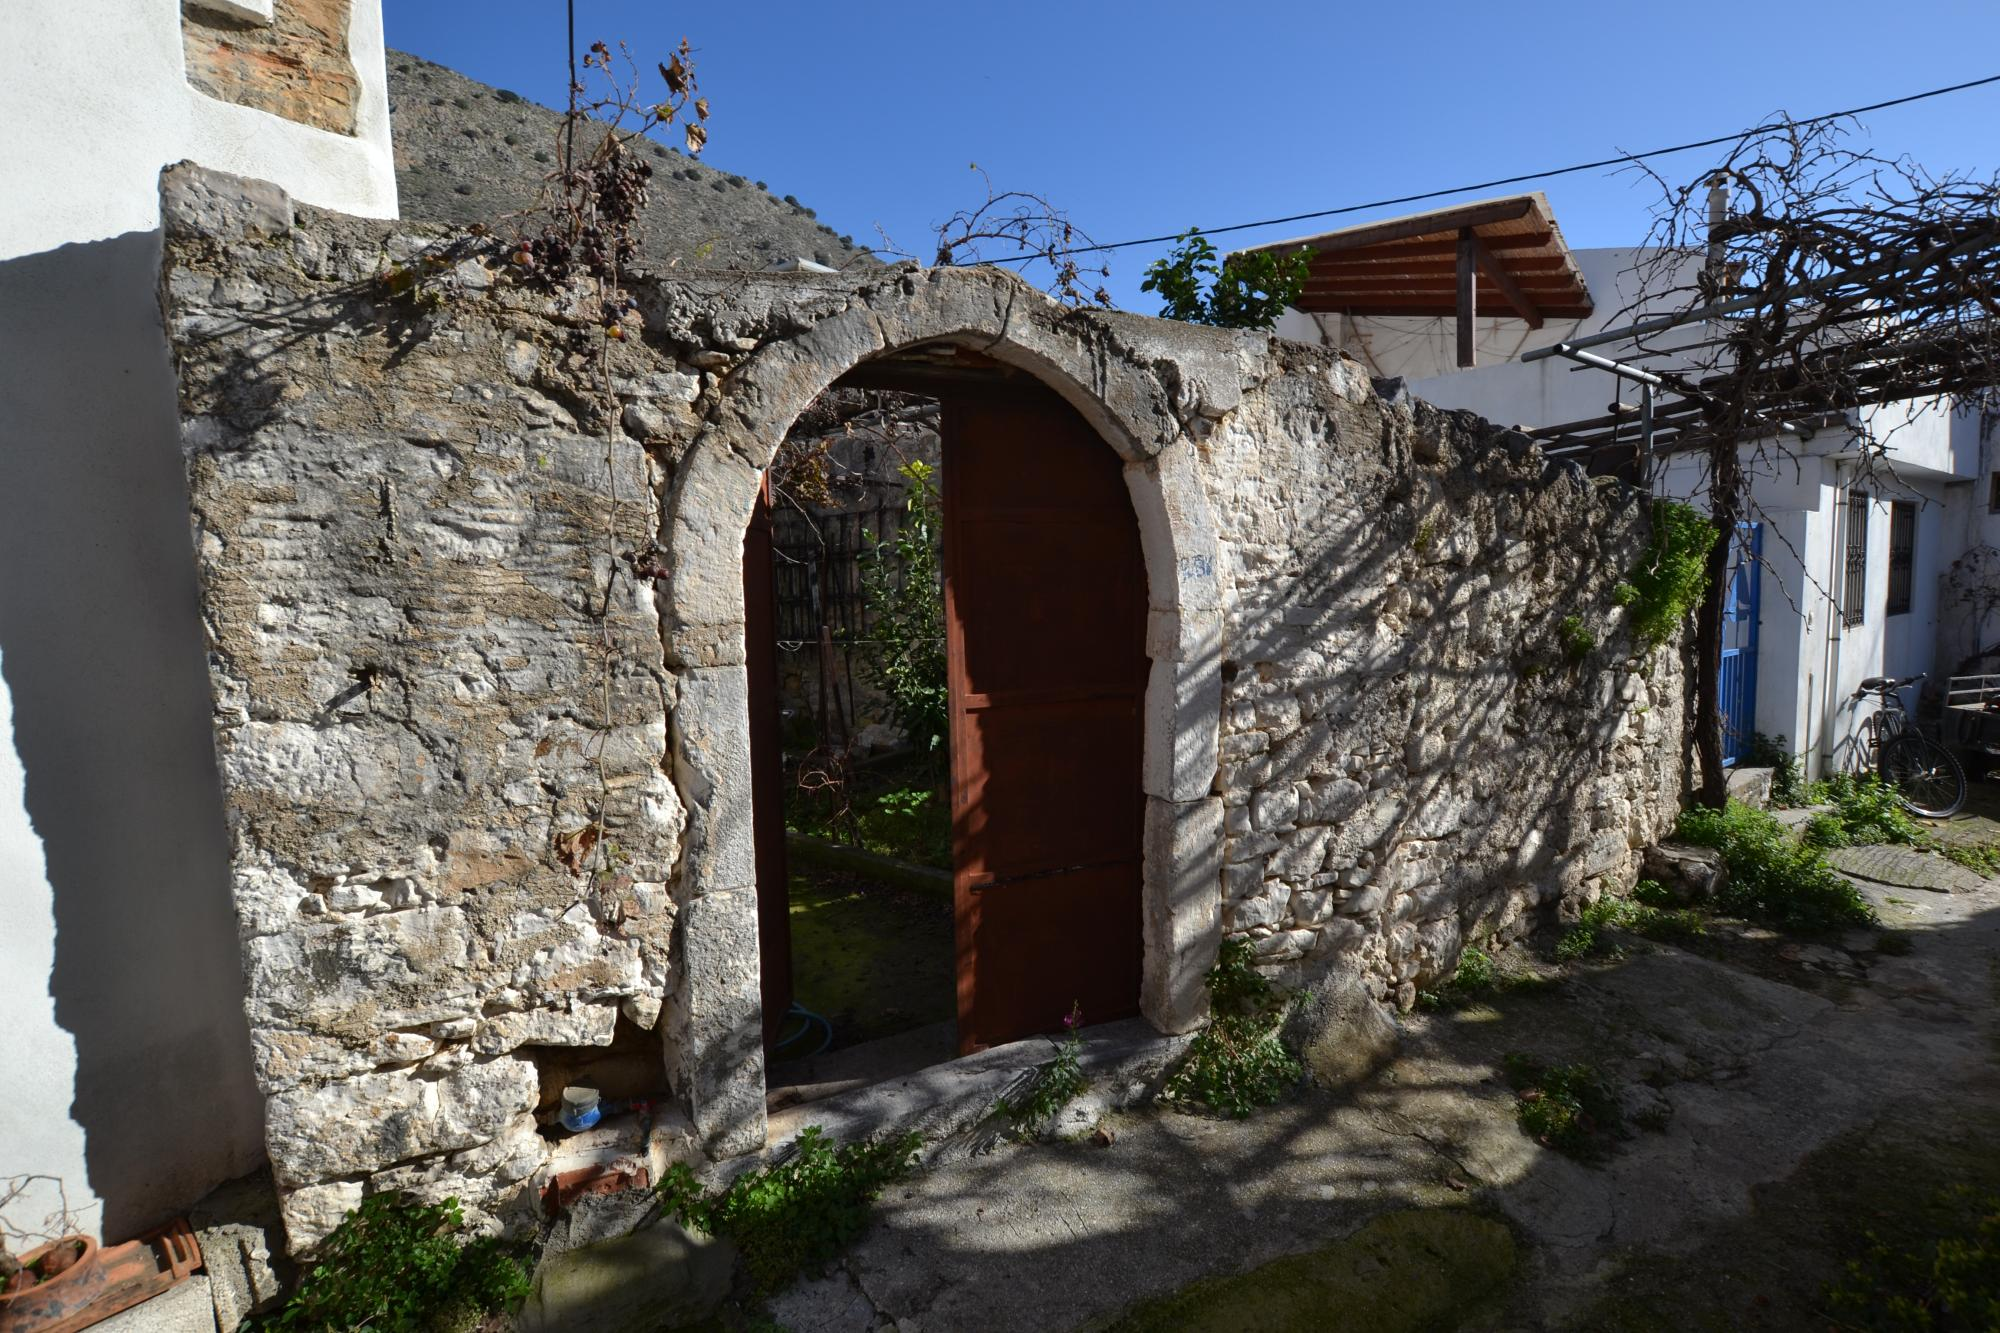 Stone house with courtyard and roof terrace. Limnes